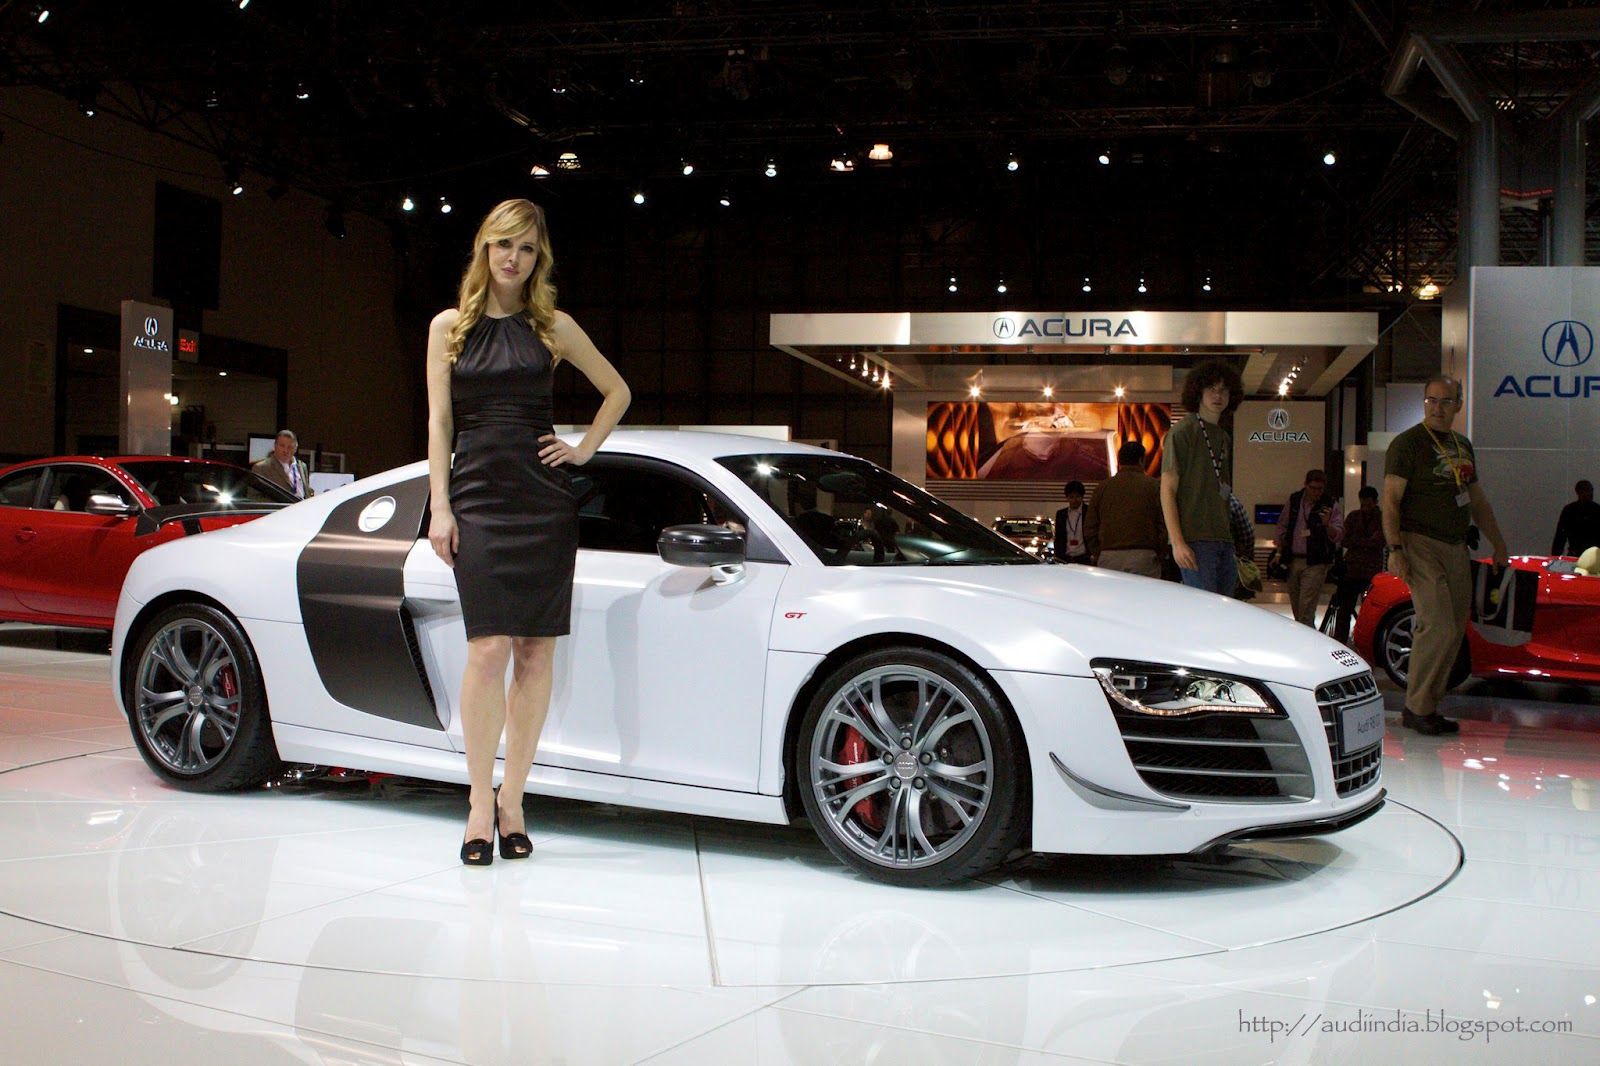 hot models vs audi r8 the world of audi. Black Bedroom Furniture Sets. Home Design Ideas